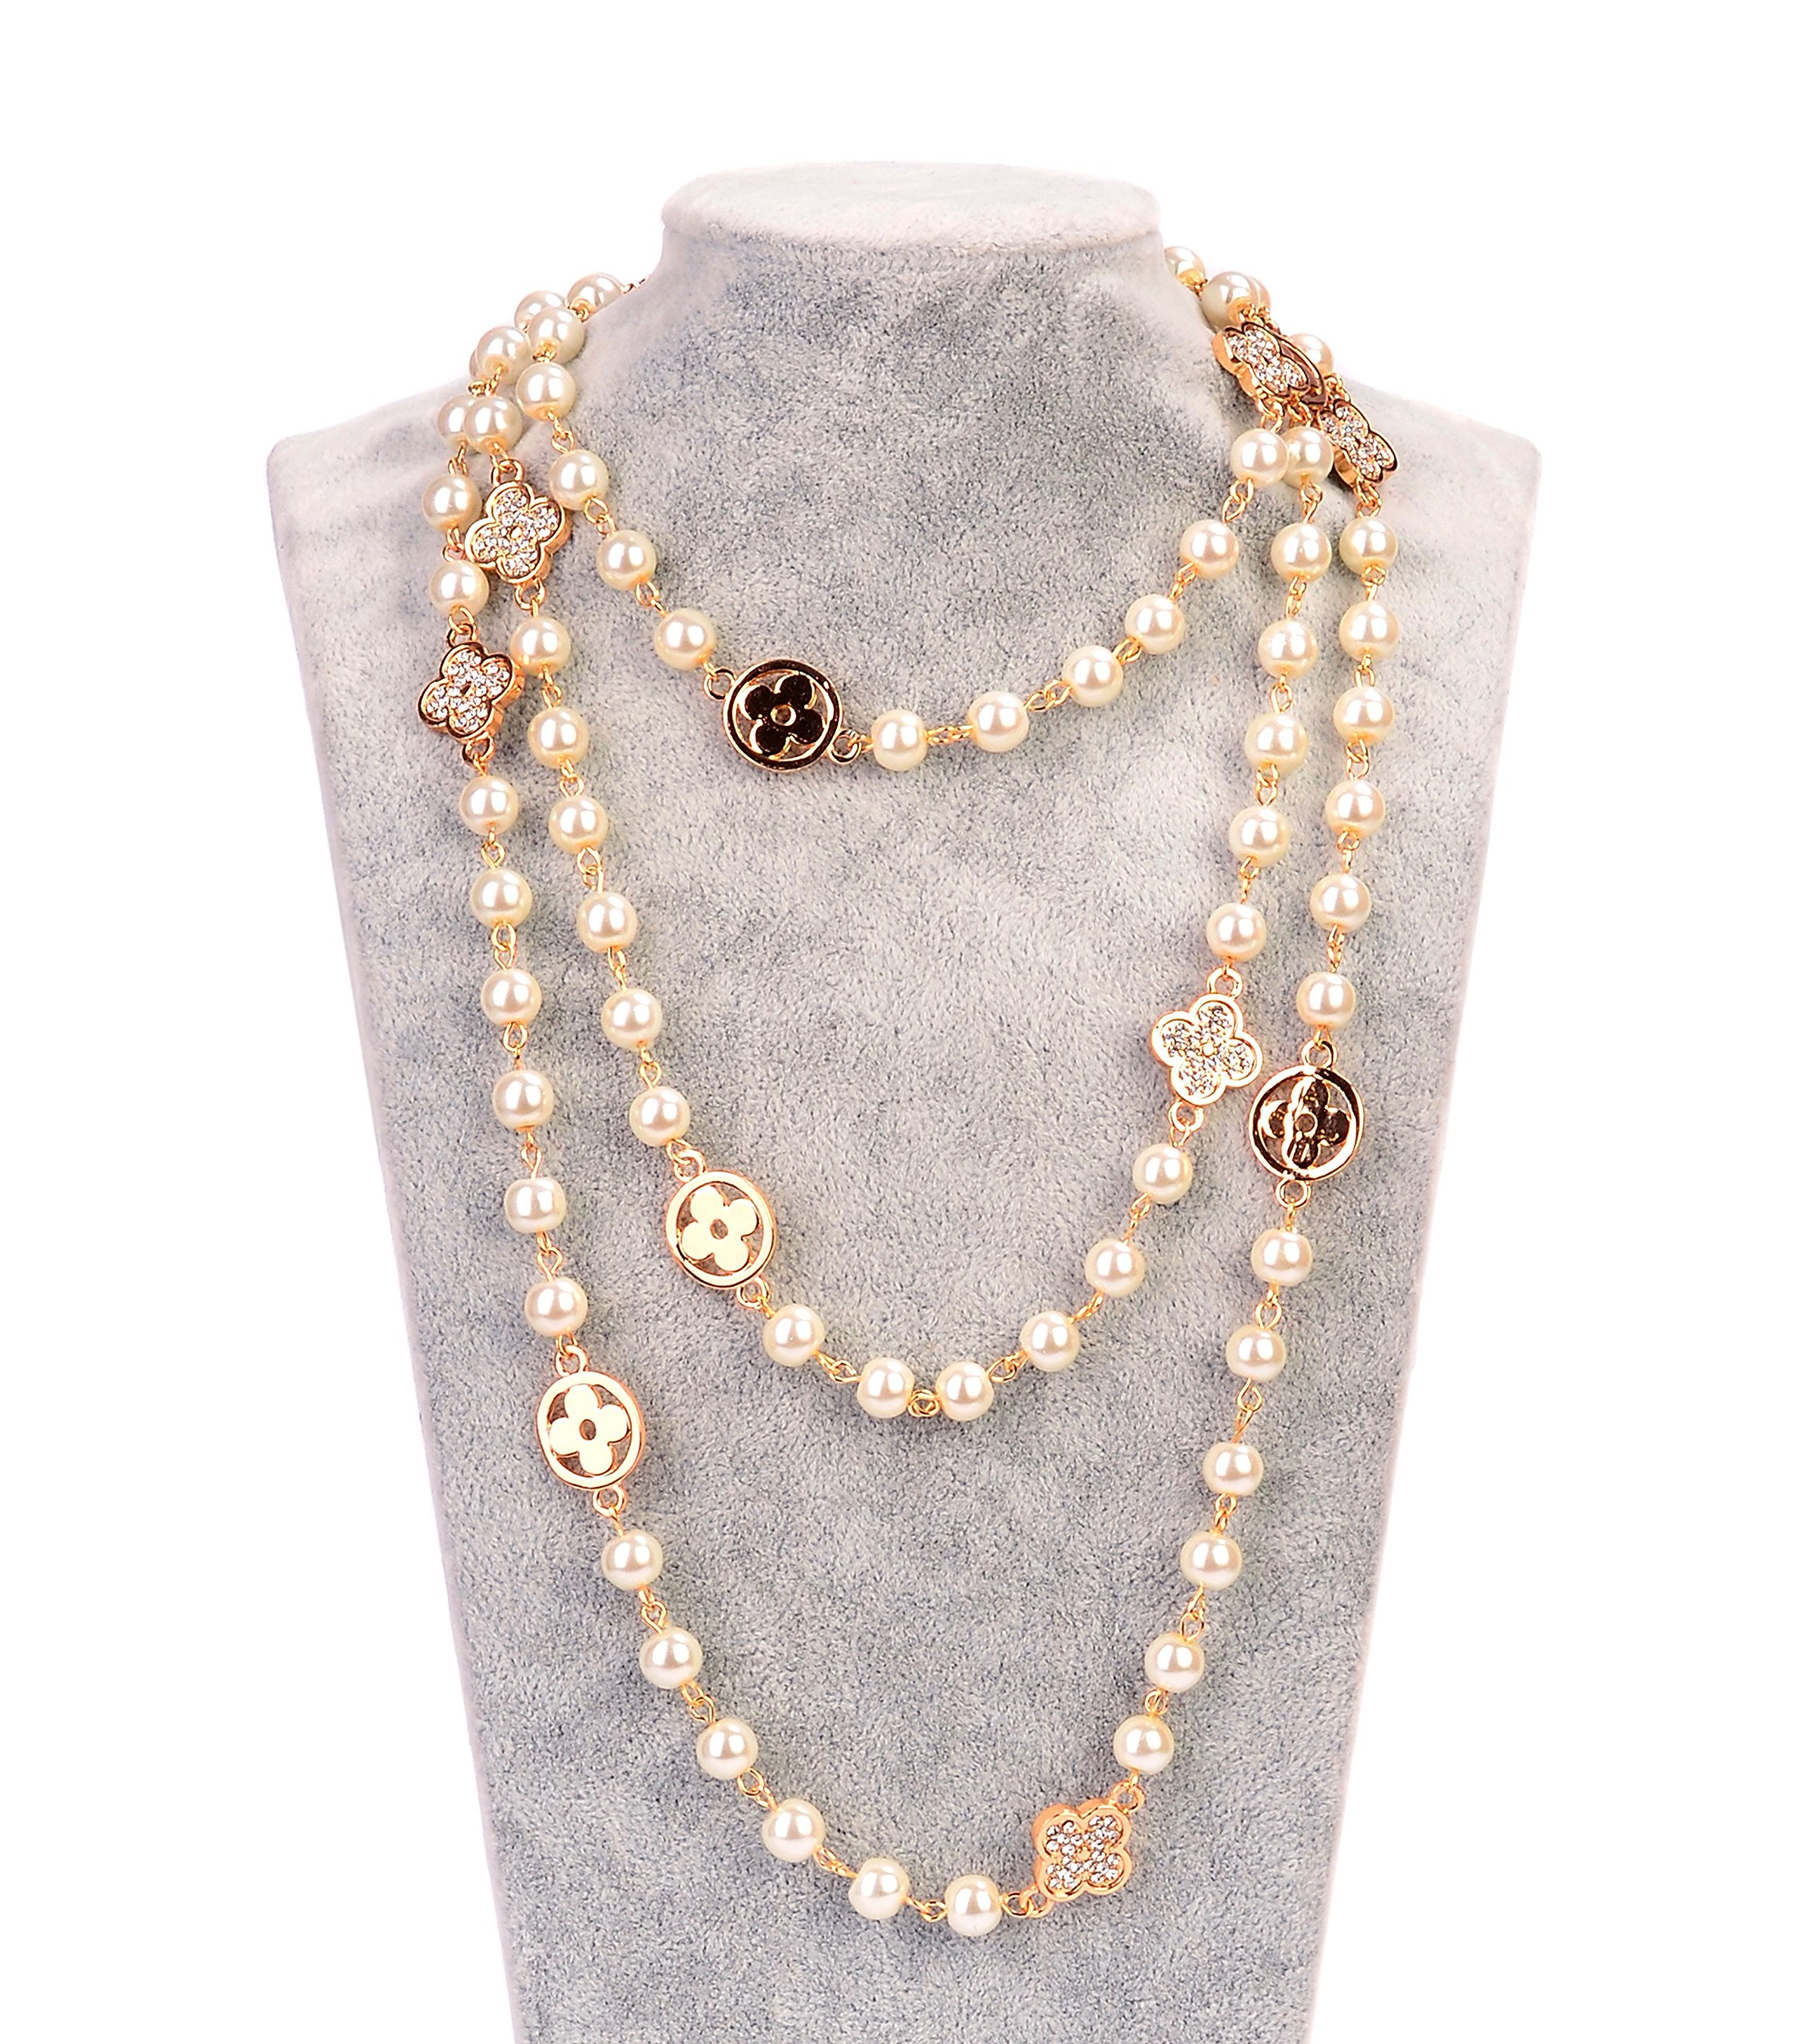 Fashion Jewelry MISASHA Bridal Chic Long Imitation Pearl 4Leaf Clover Strand Necklace (Gold Clover)